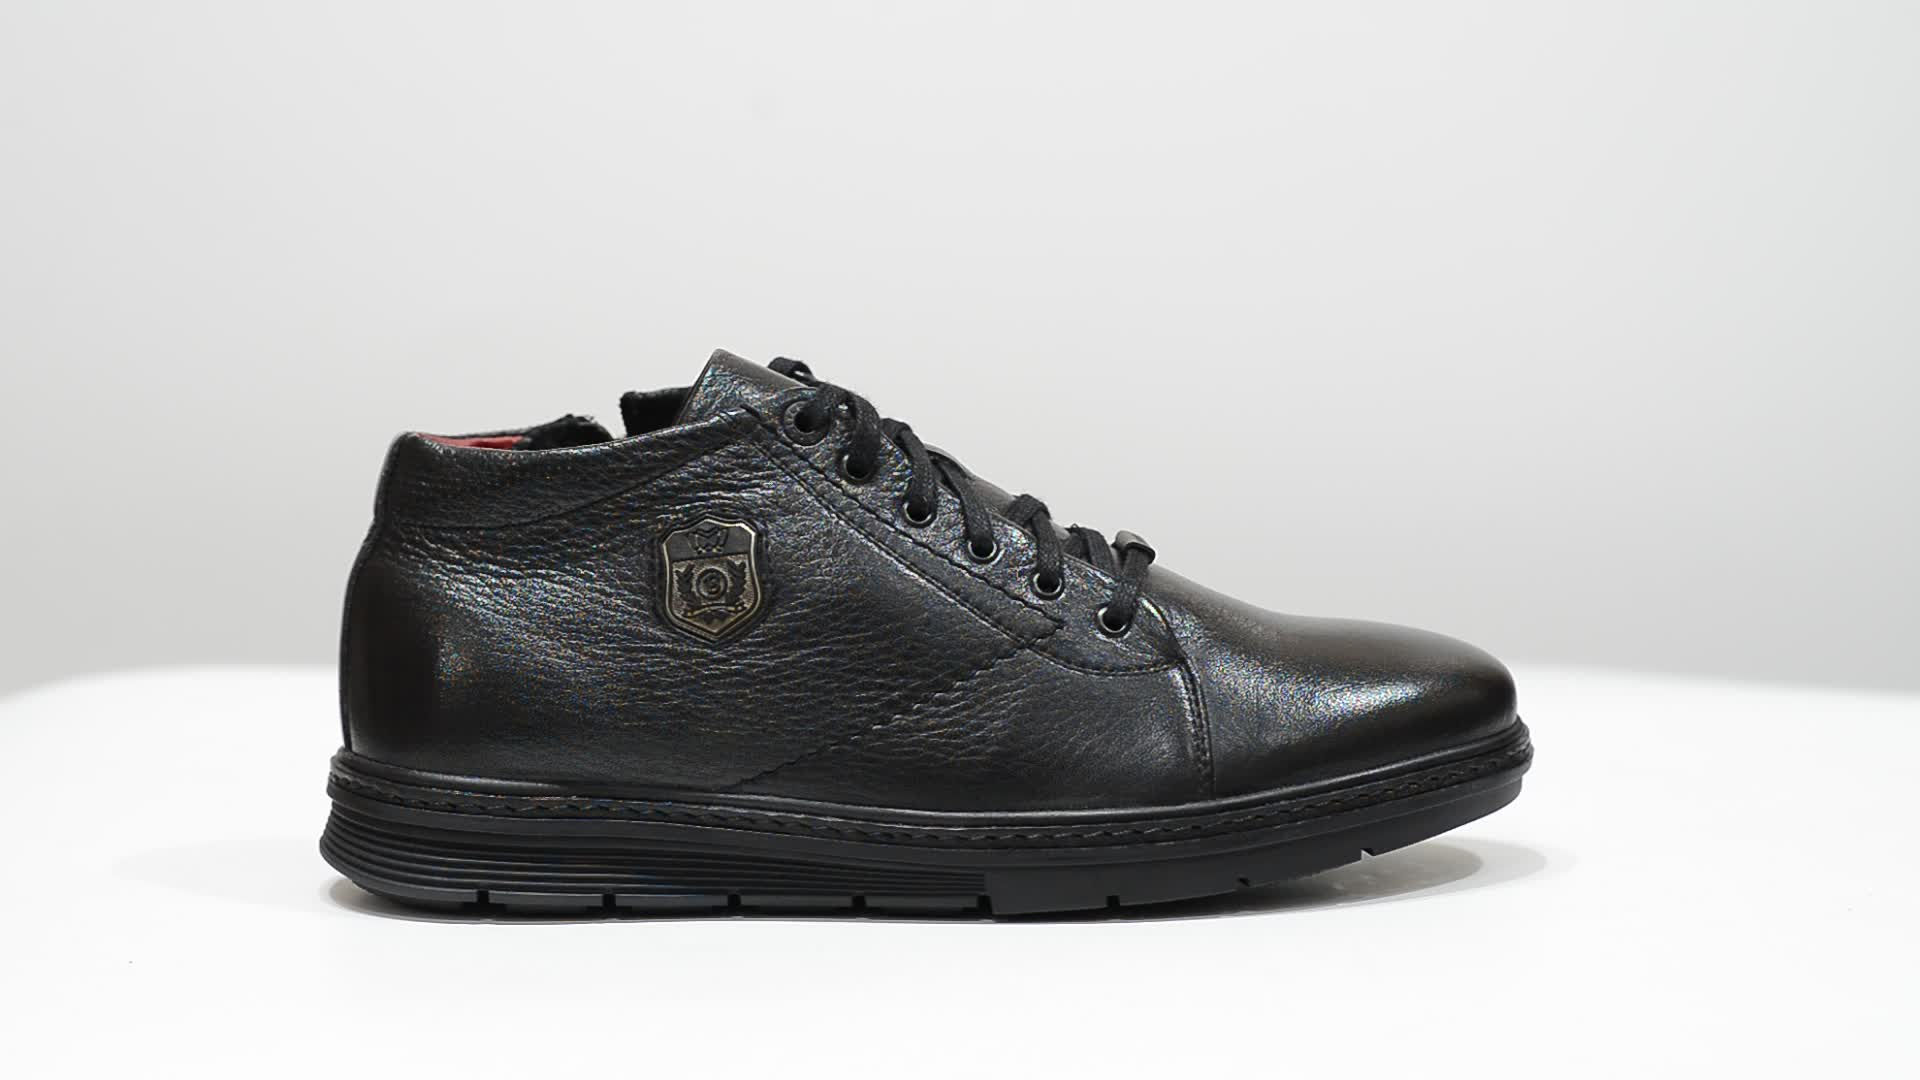 Men's winter shoes M141chp